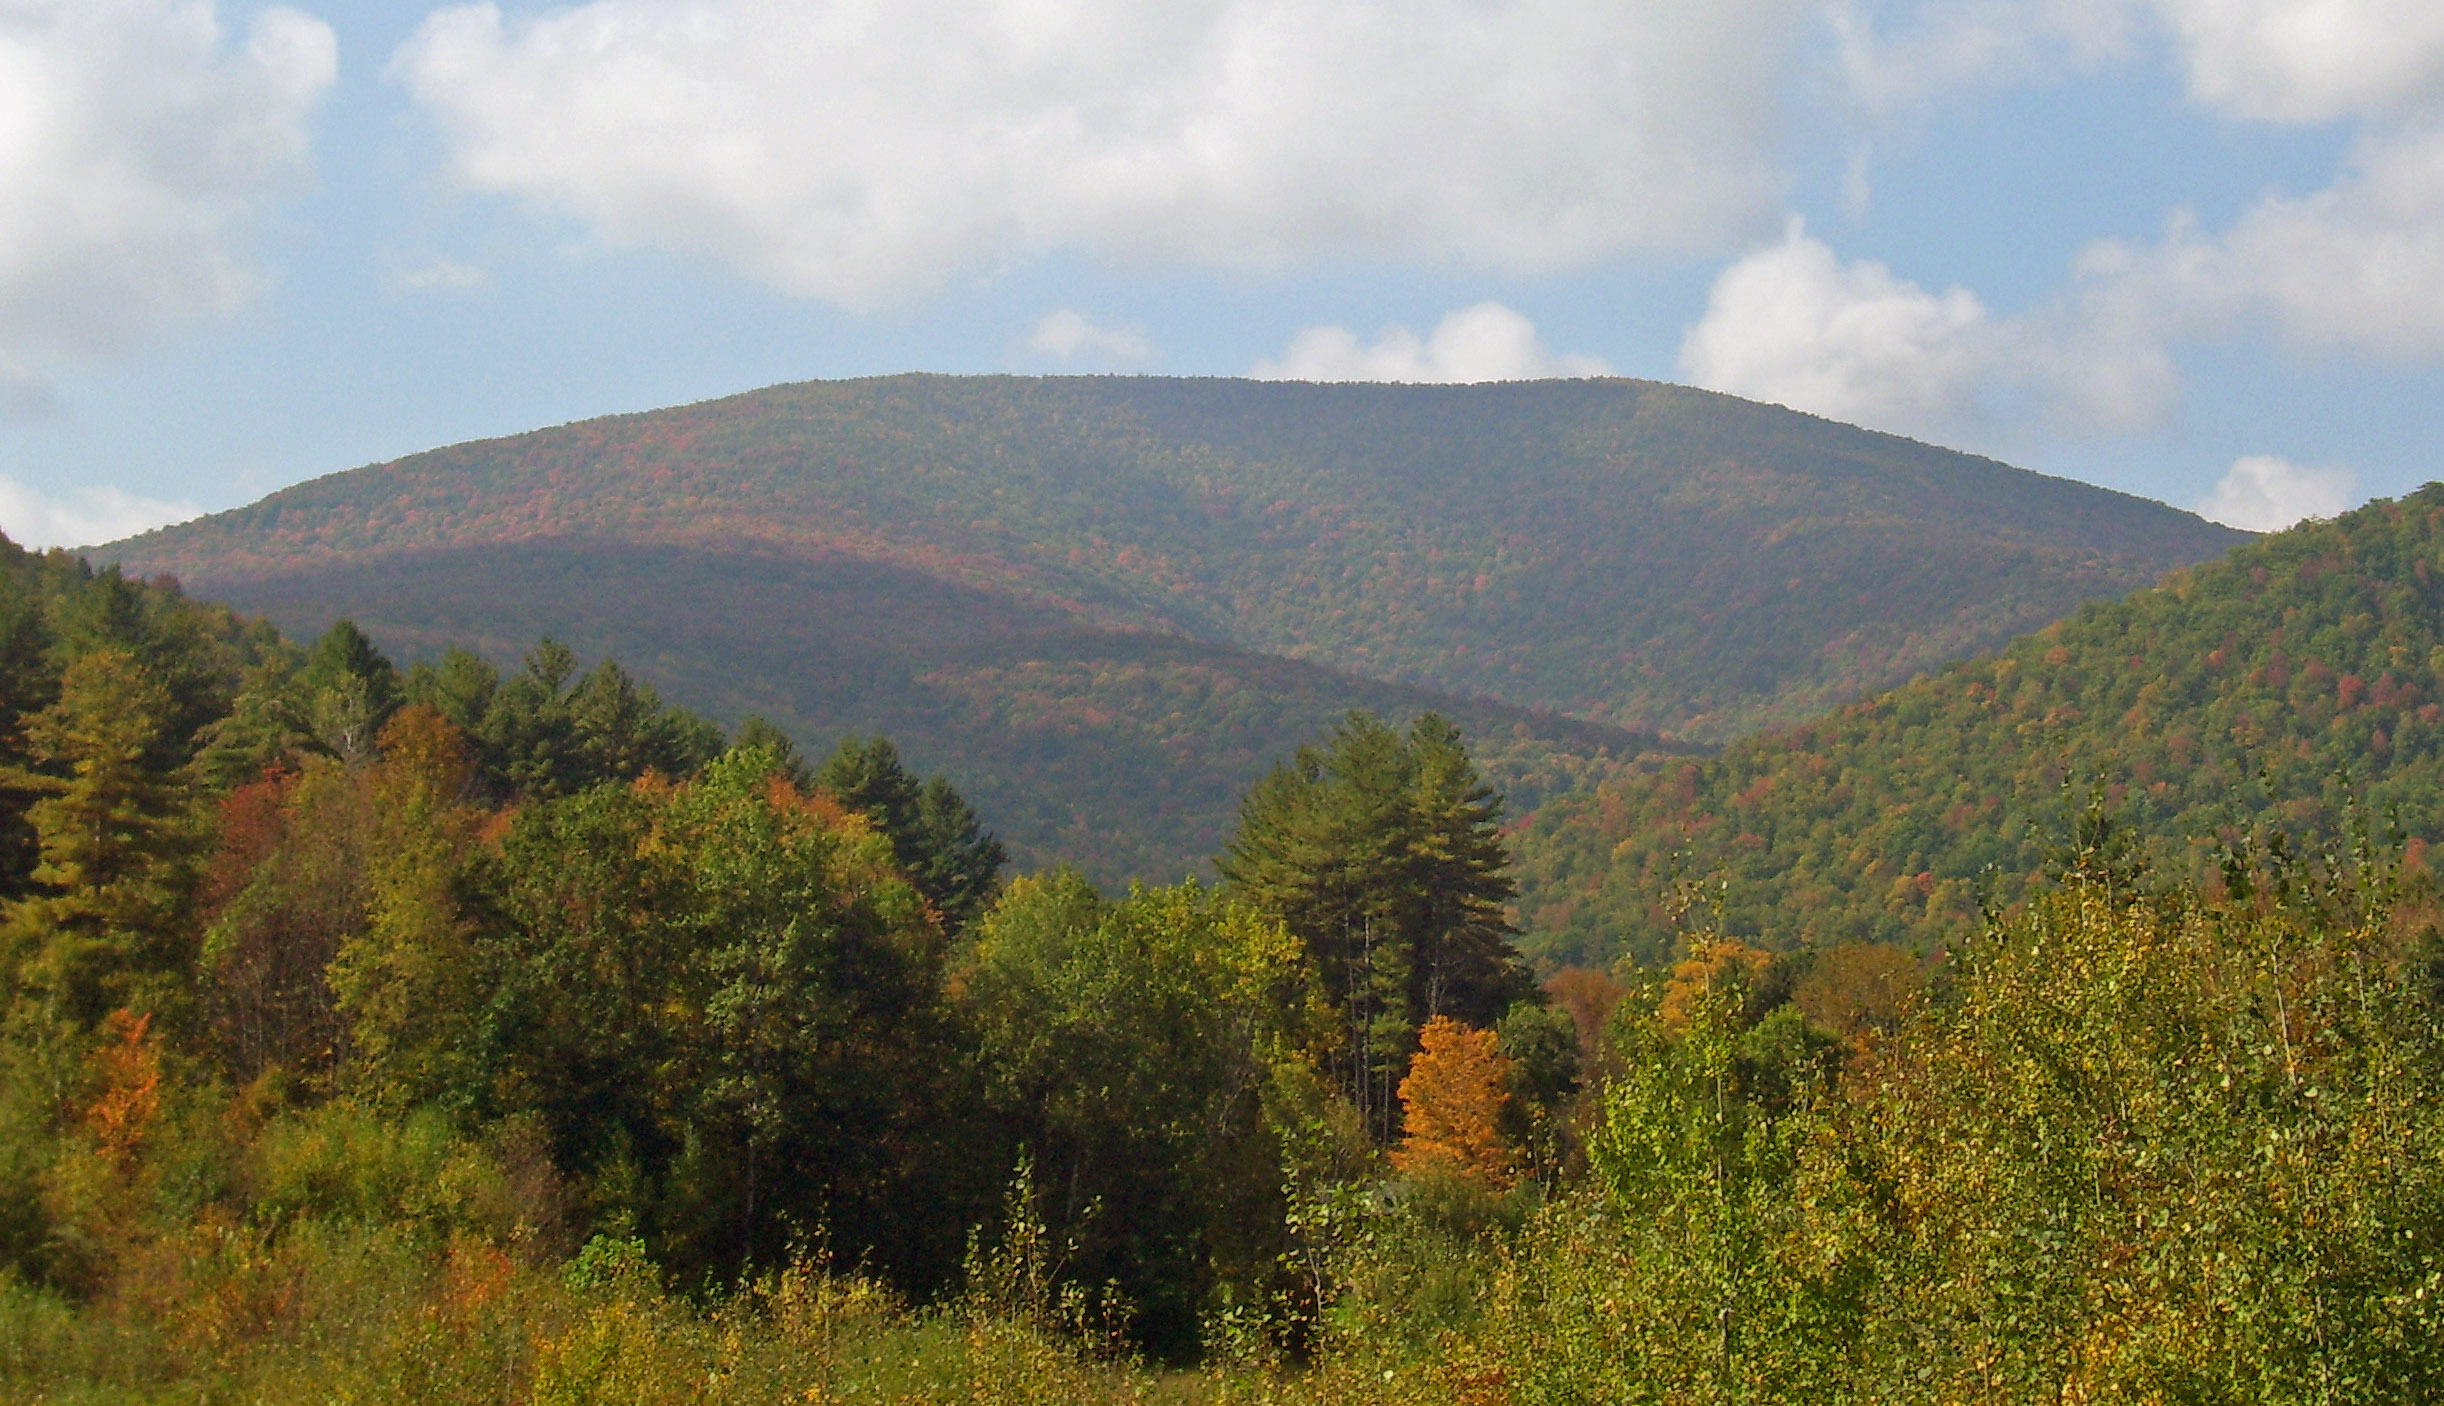 balsam mountain ulster county new york wikiwand